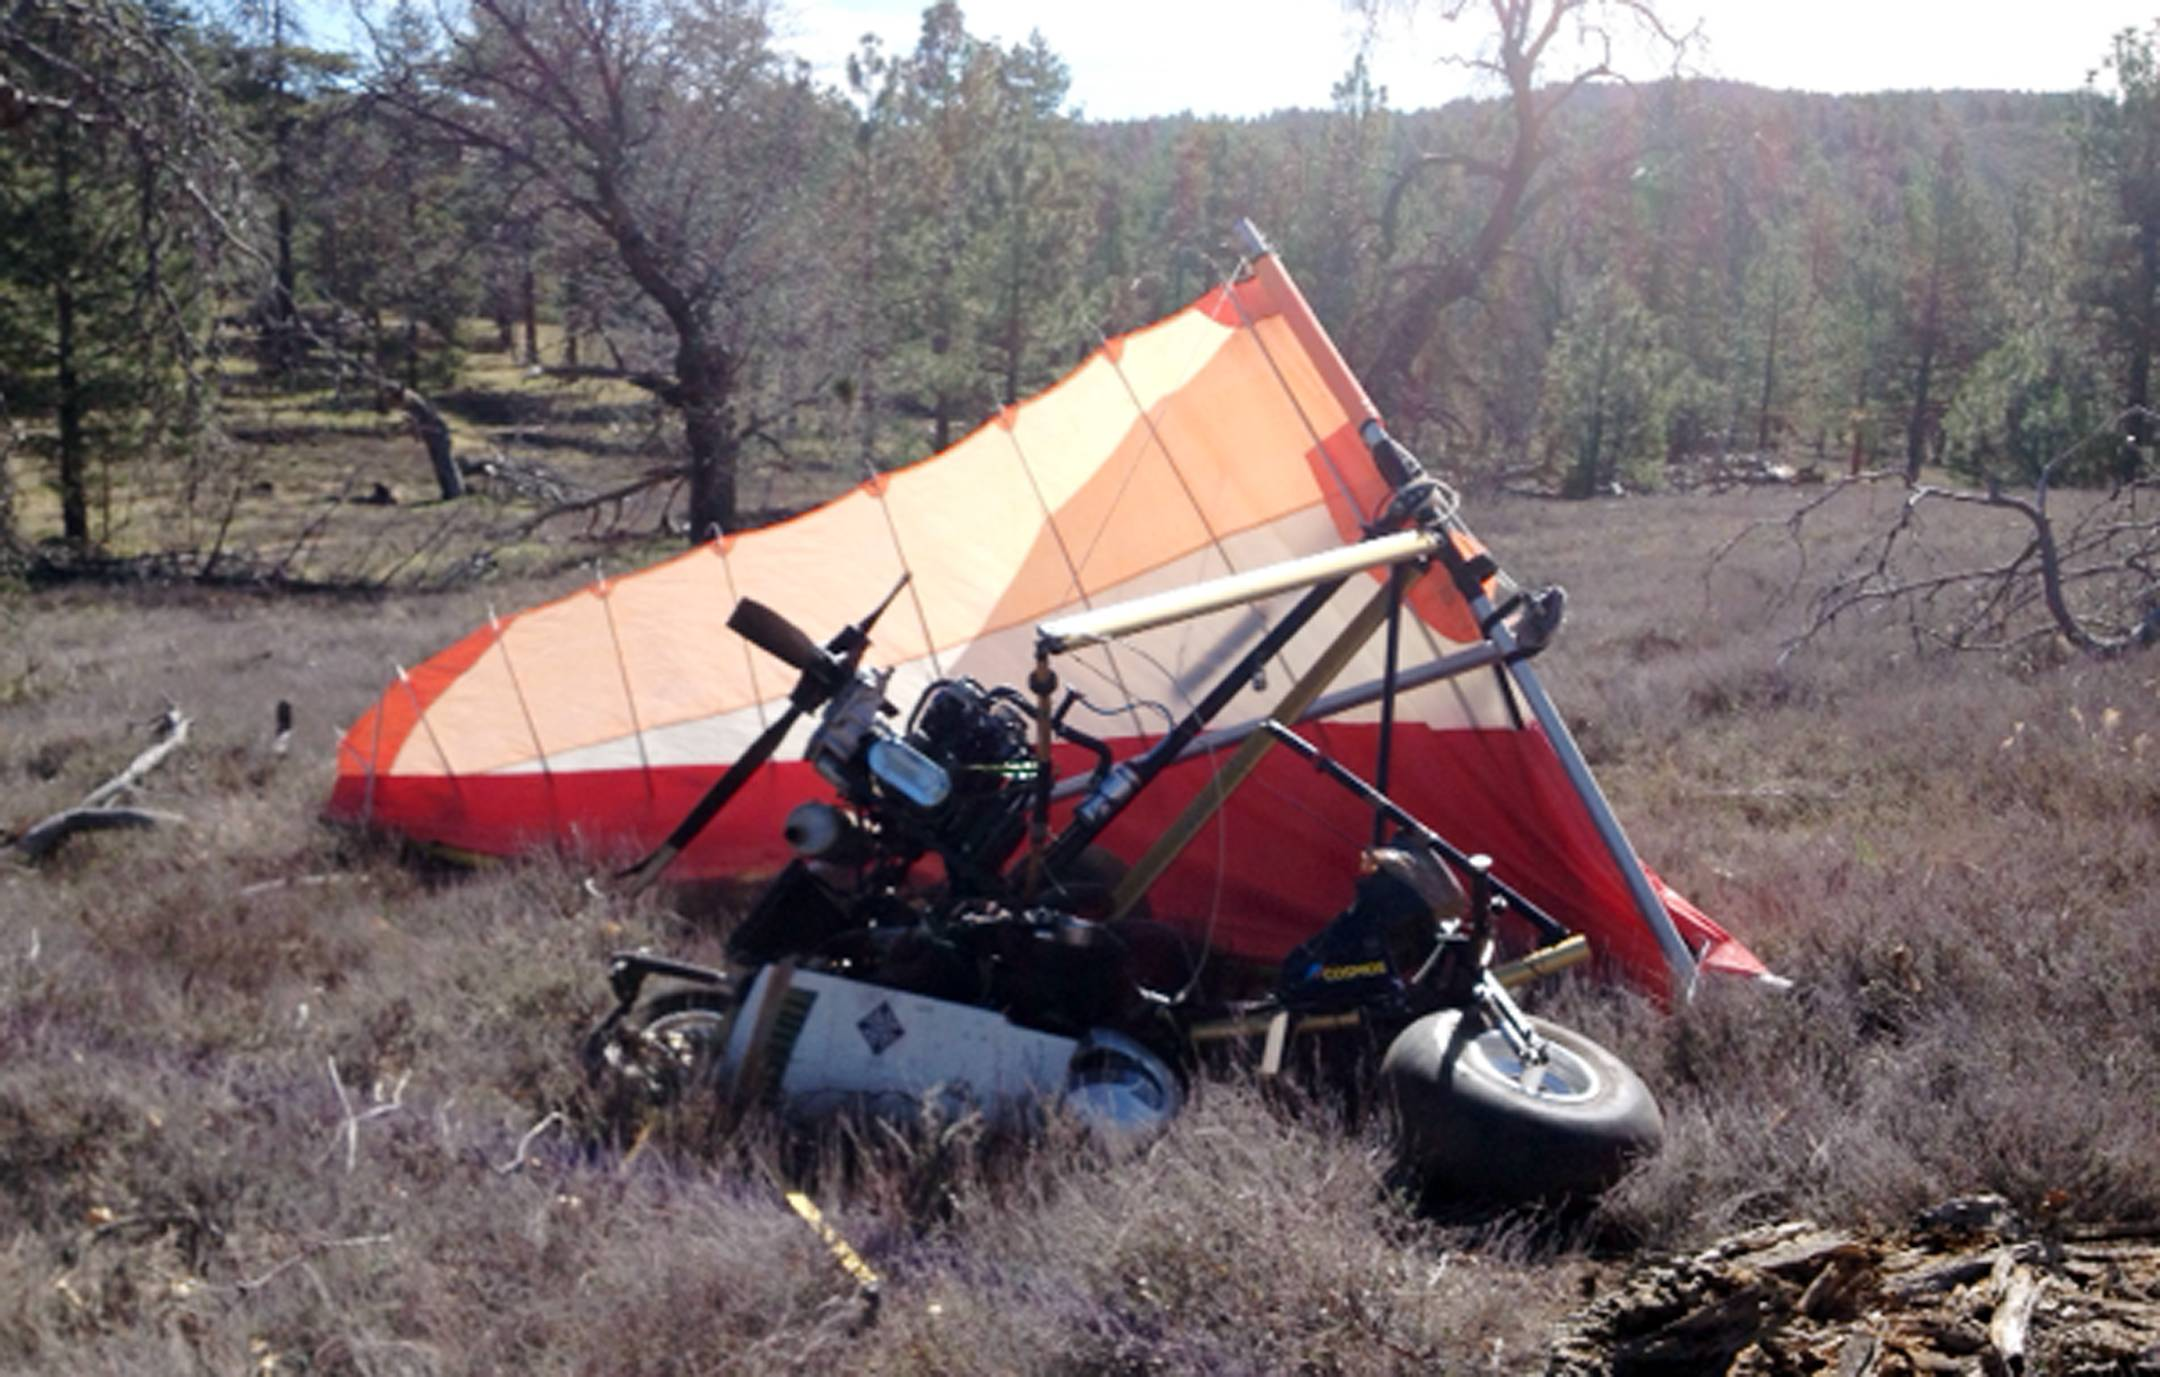 A crash site Friday where Federal authorities said an ultralight aircraft carrying about 250 pounds of marijuana crashed in the mountains east of San Diego.